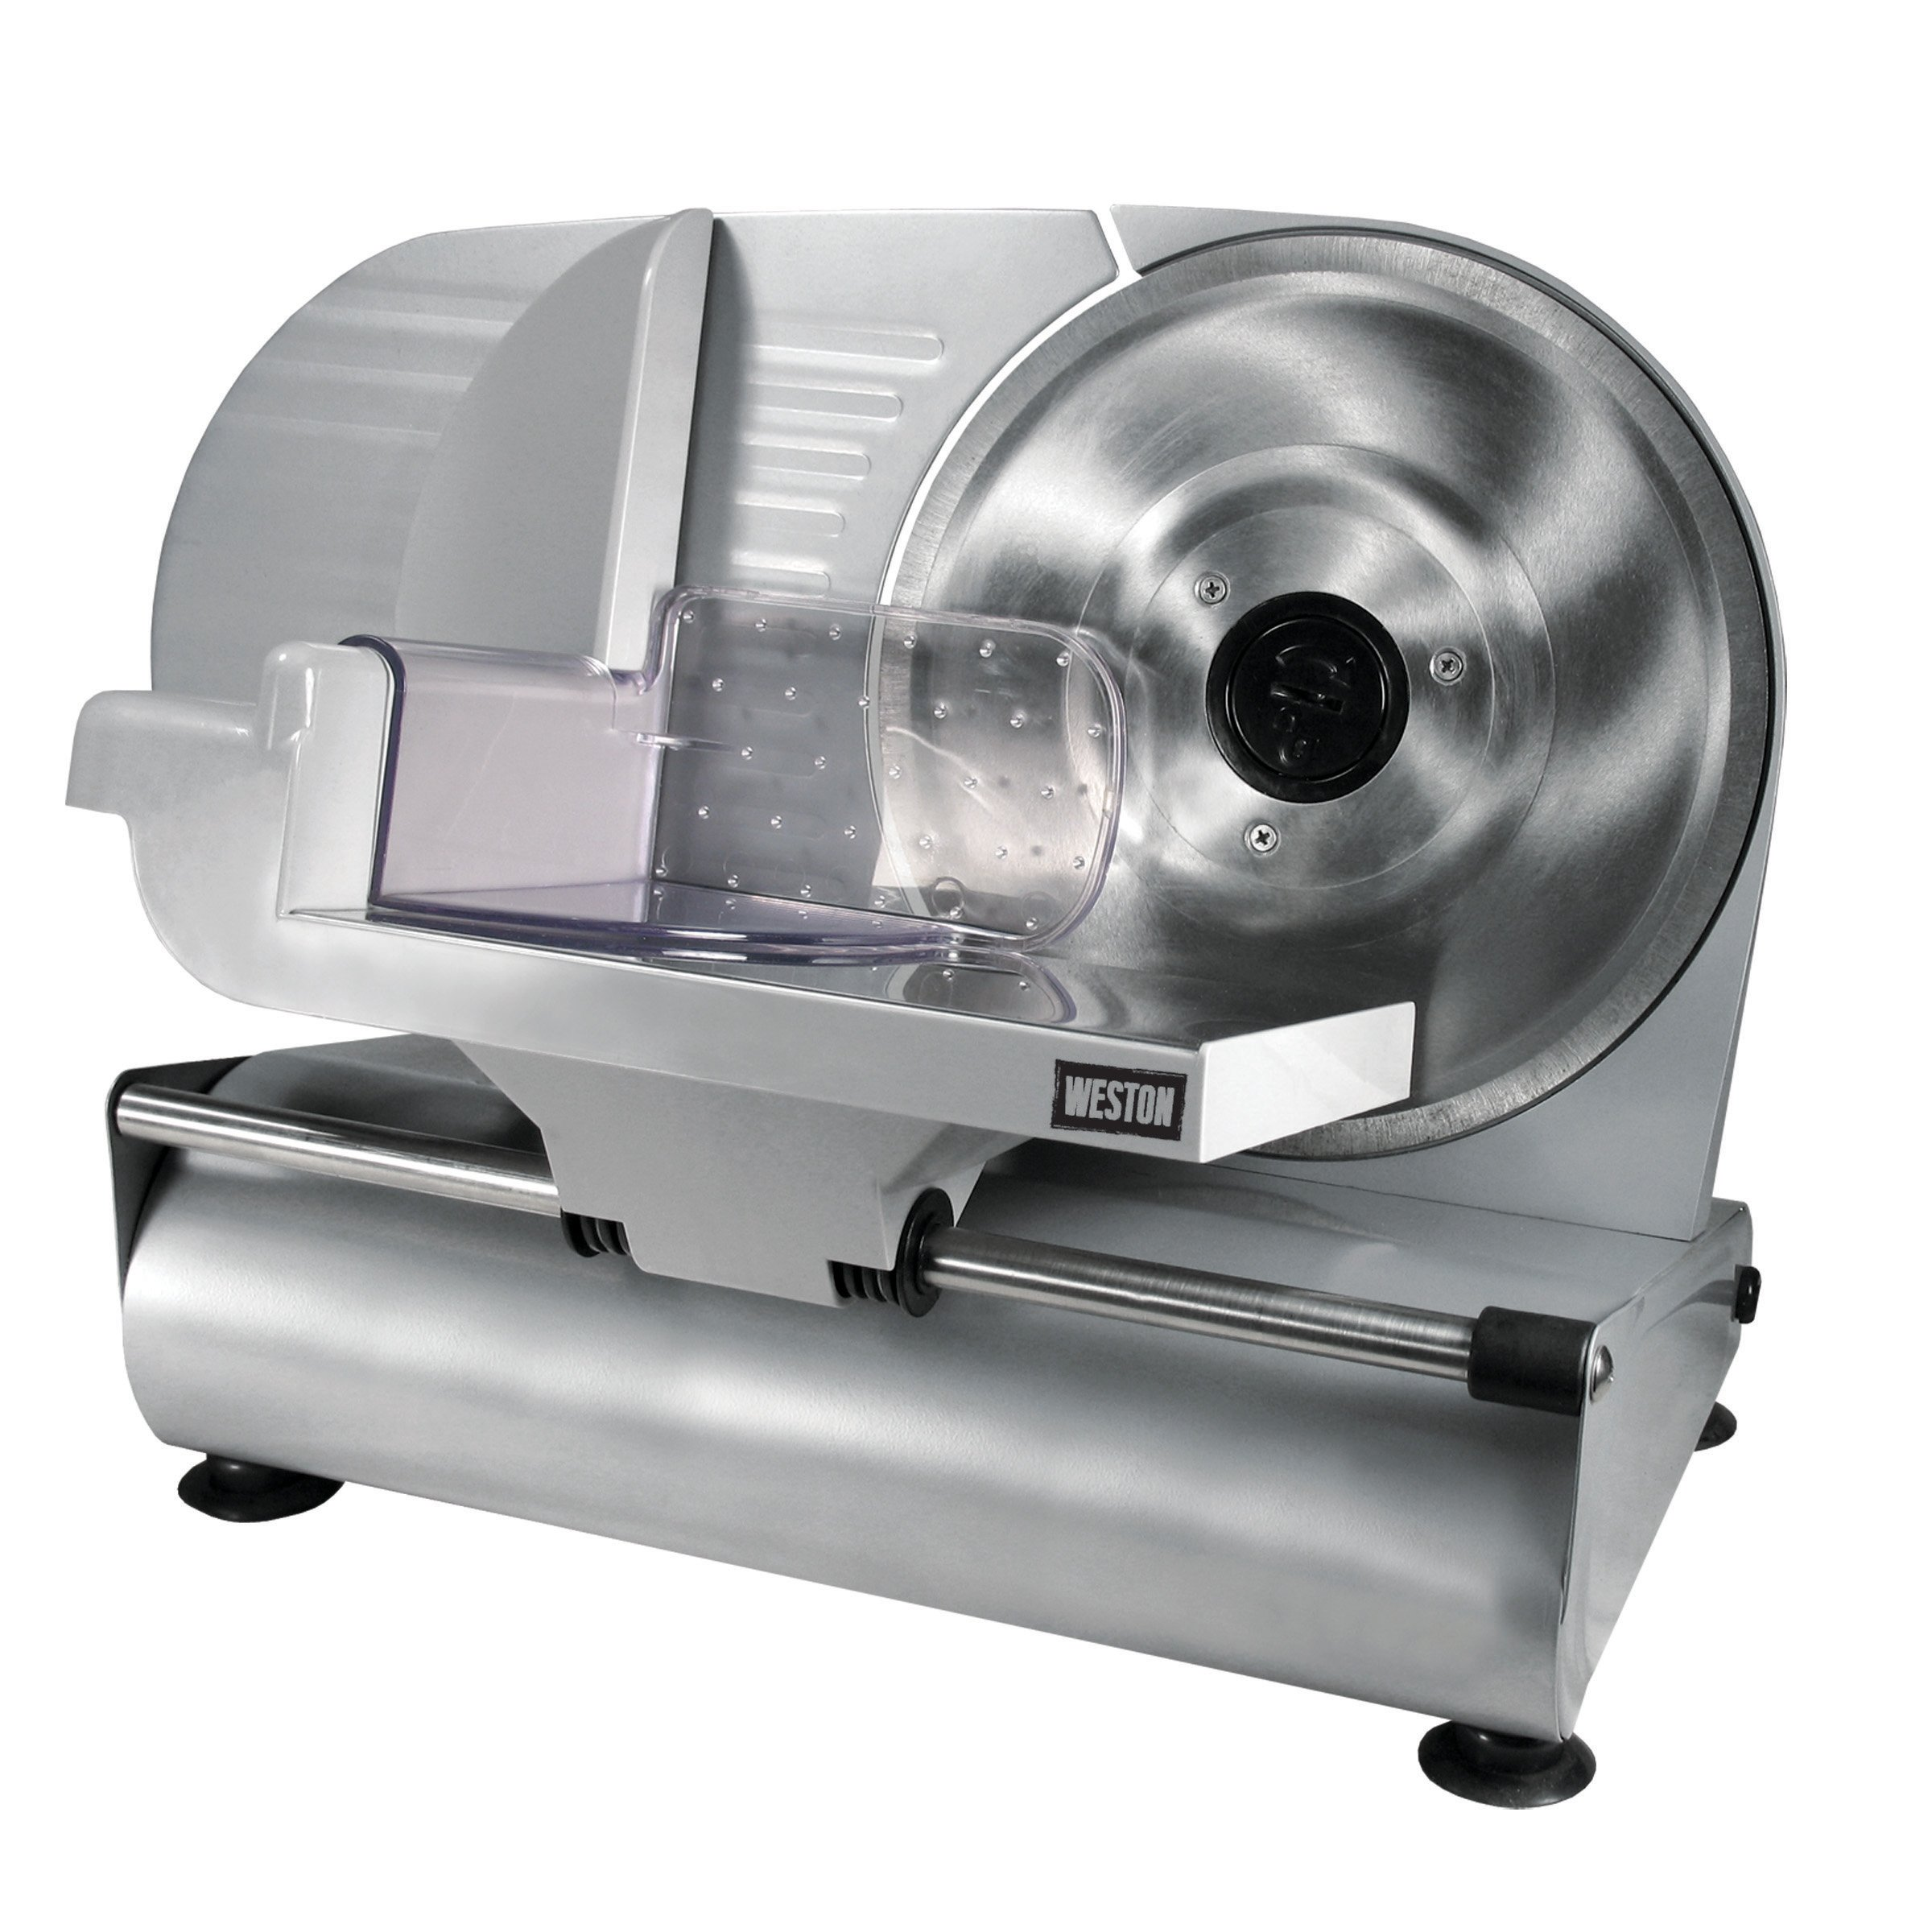 Weston 61-0901-W Heavy Duty Meat and Food Slicer, 9'', Stainless Steel by Weston